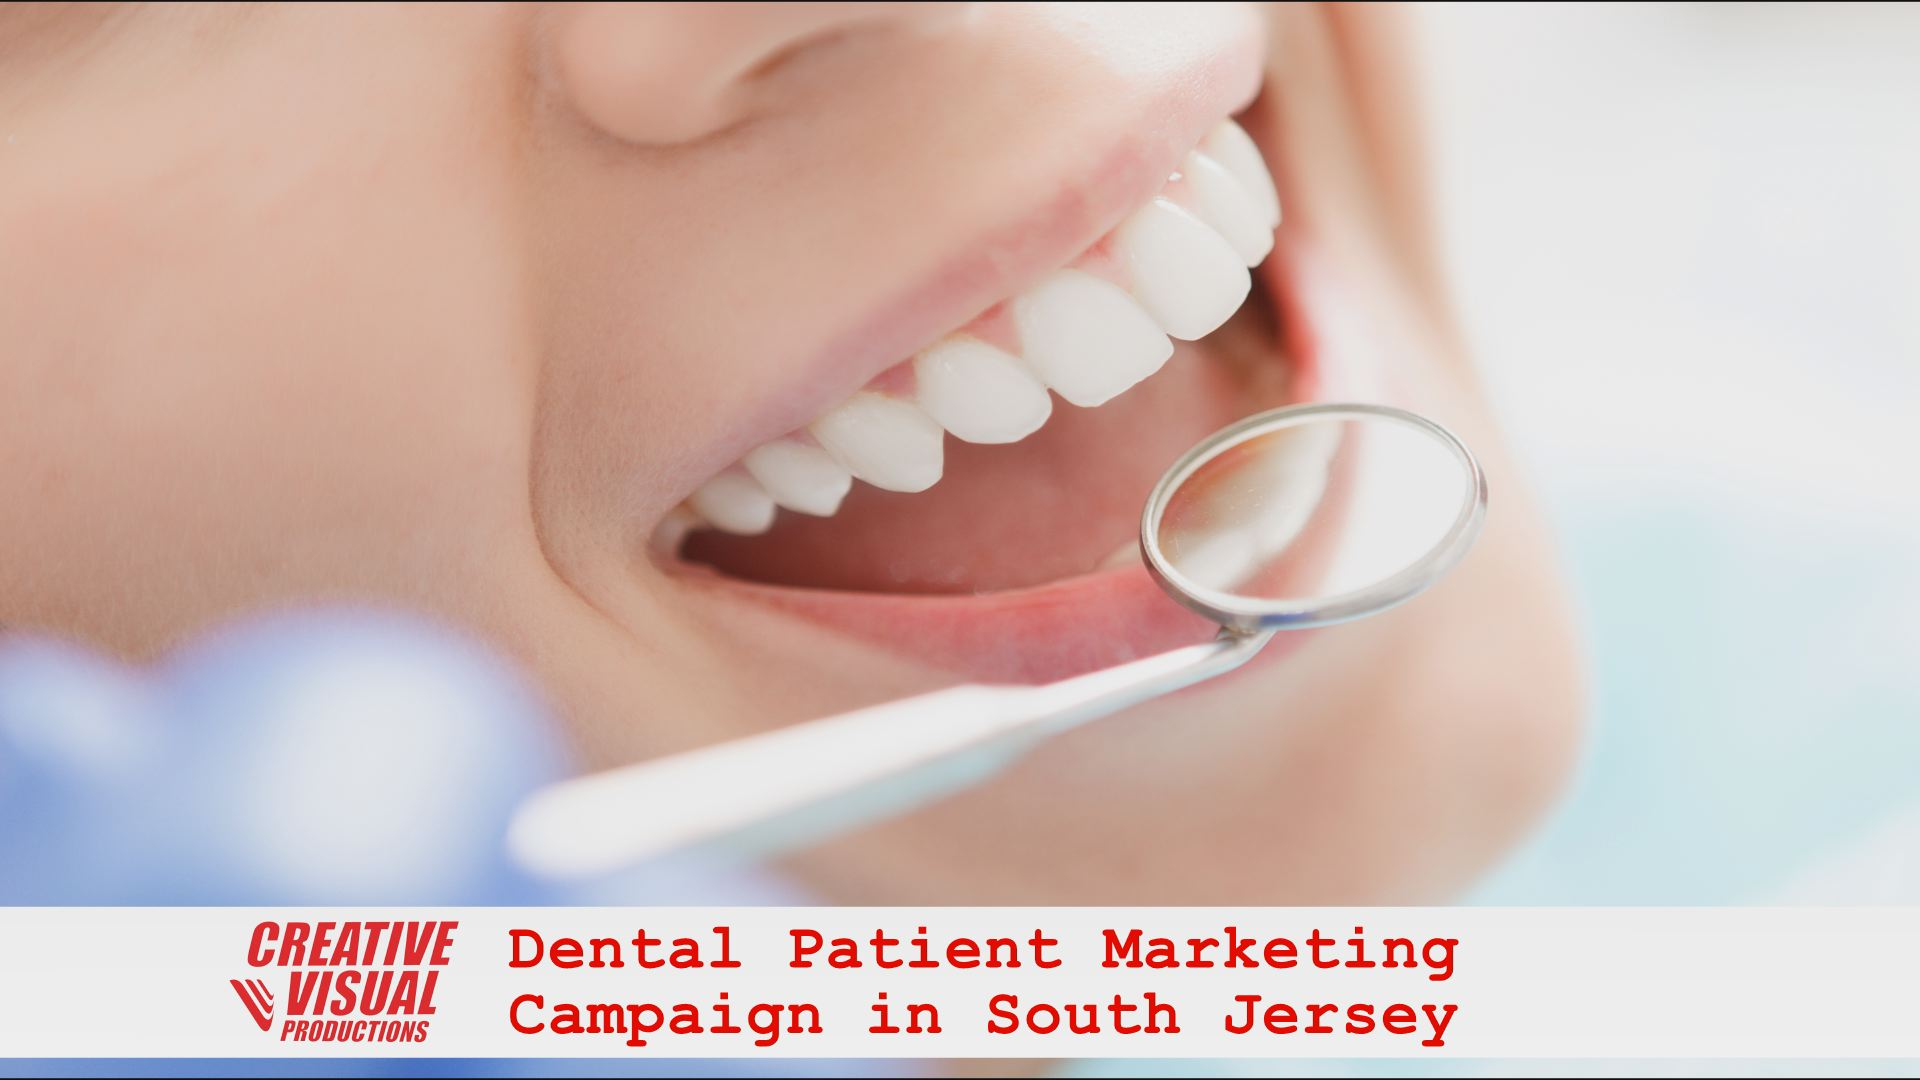 Dental Patient Marketing in South Jersey